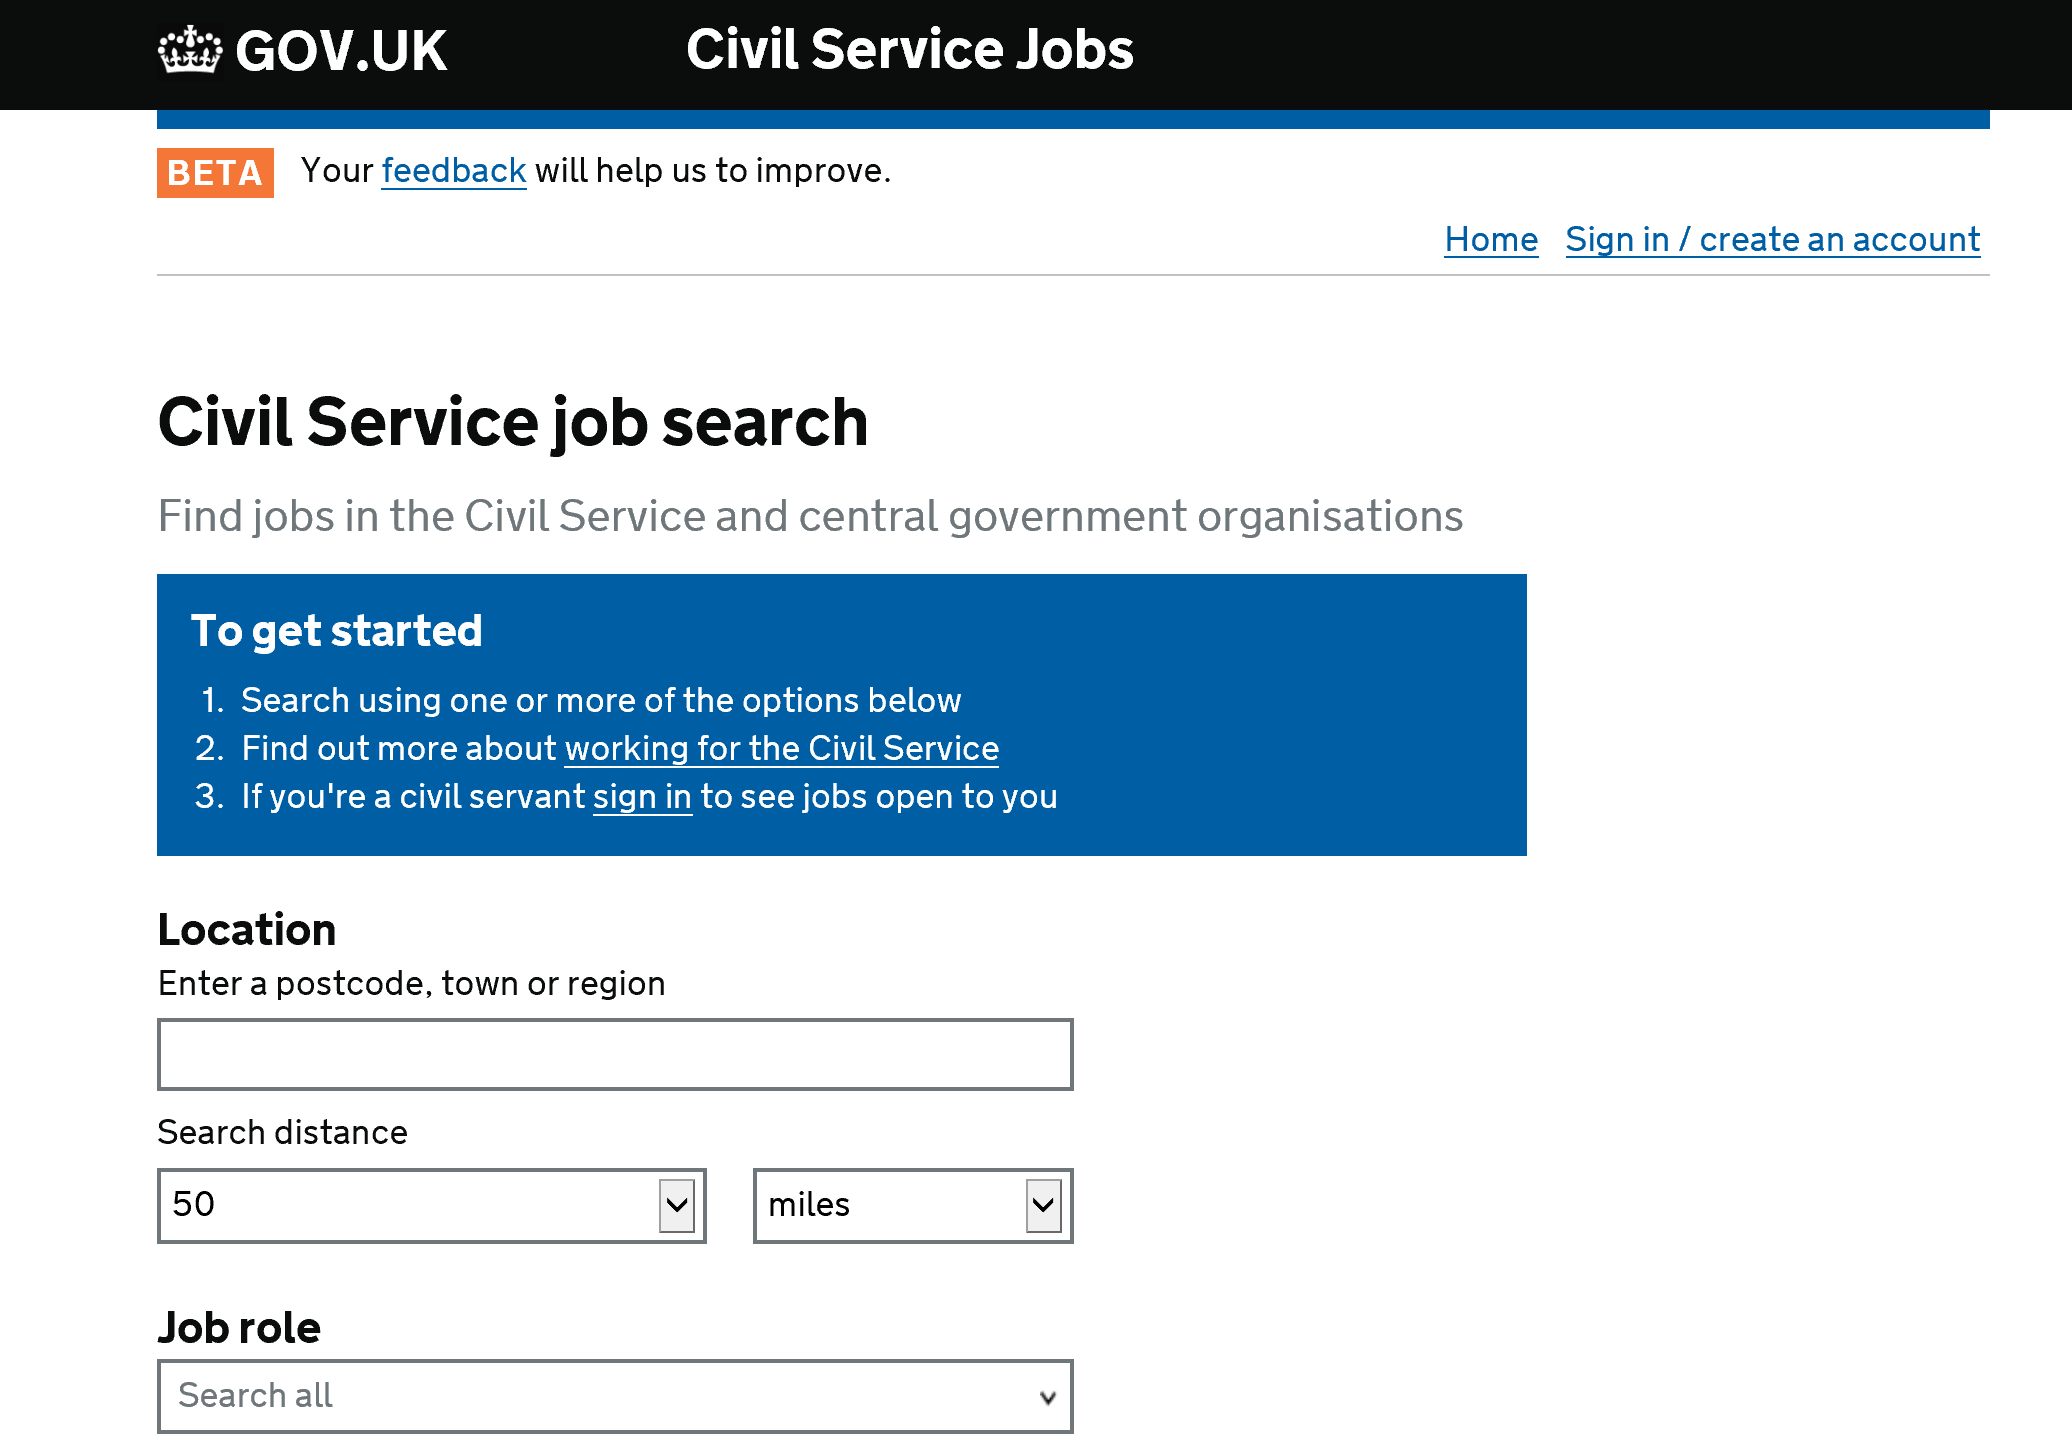 Image shows first page of the Civil Service Jobs website